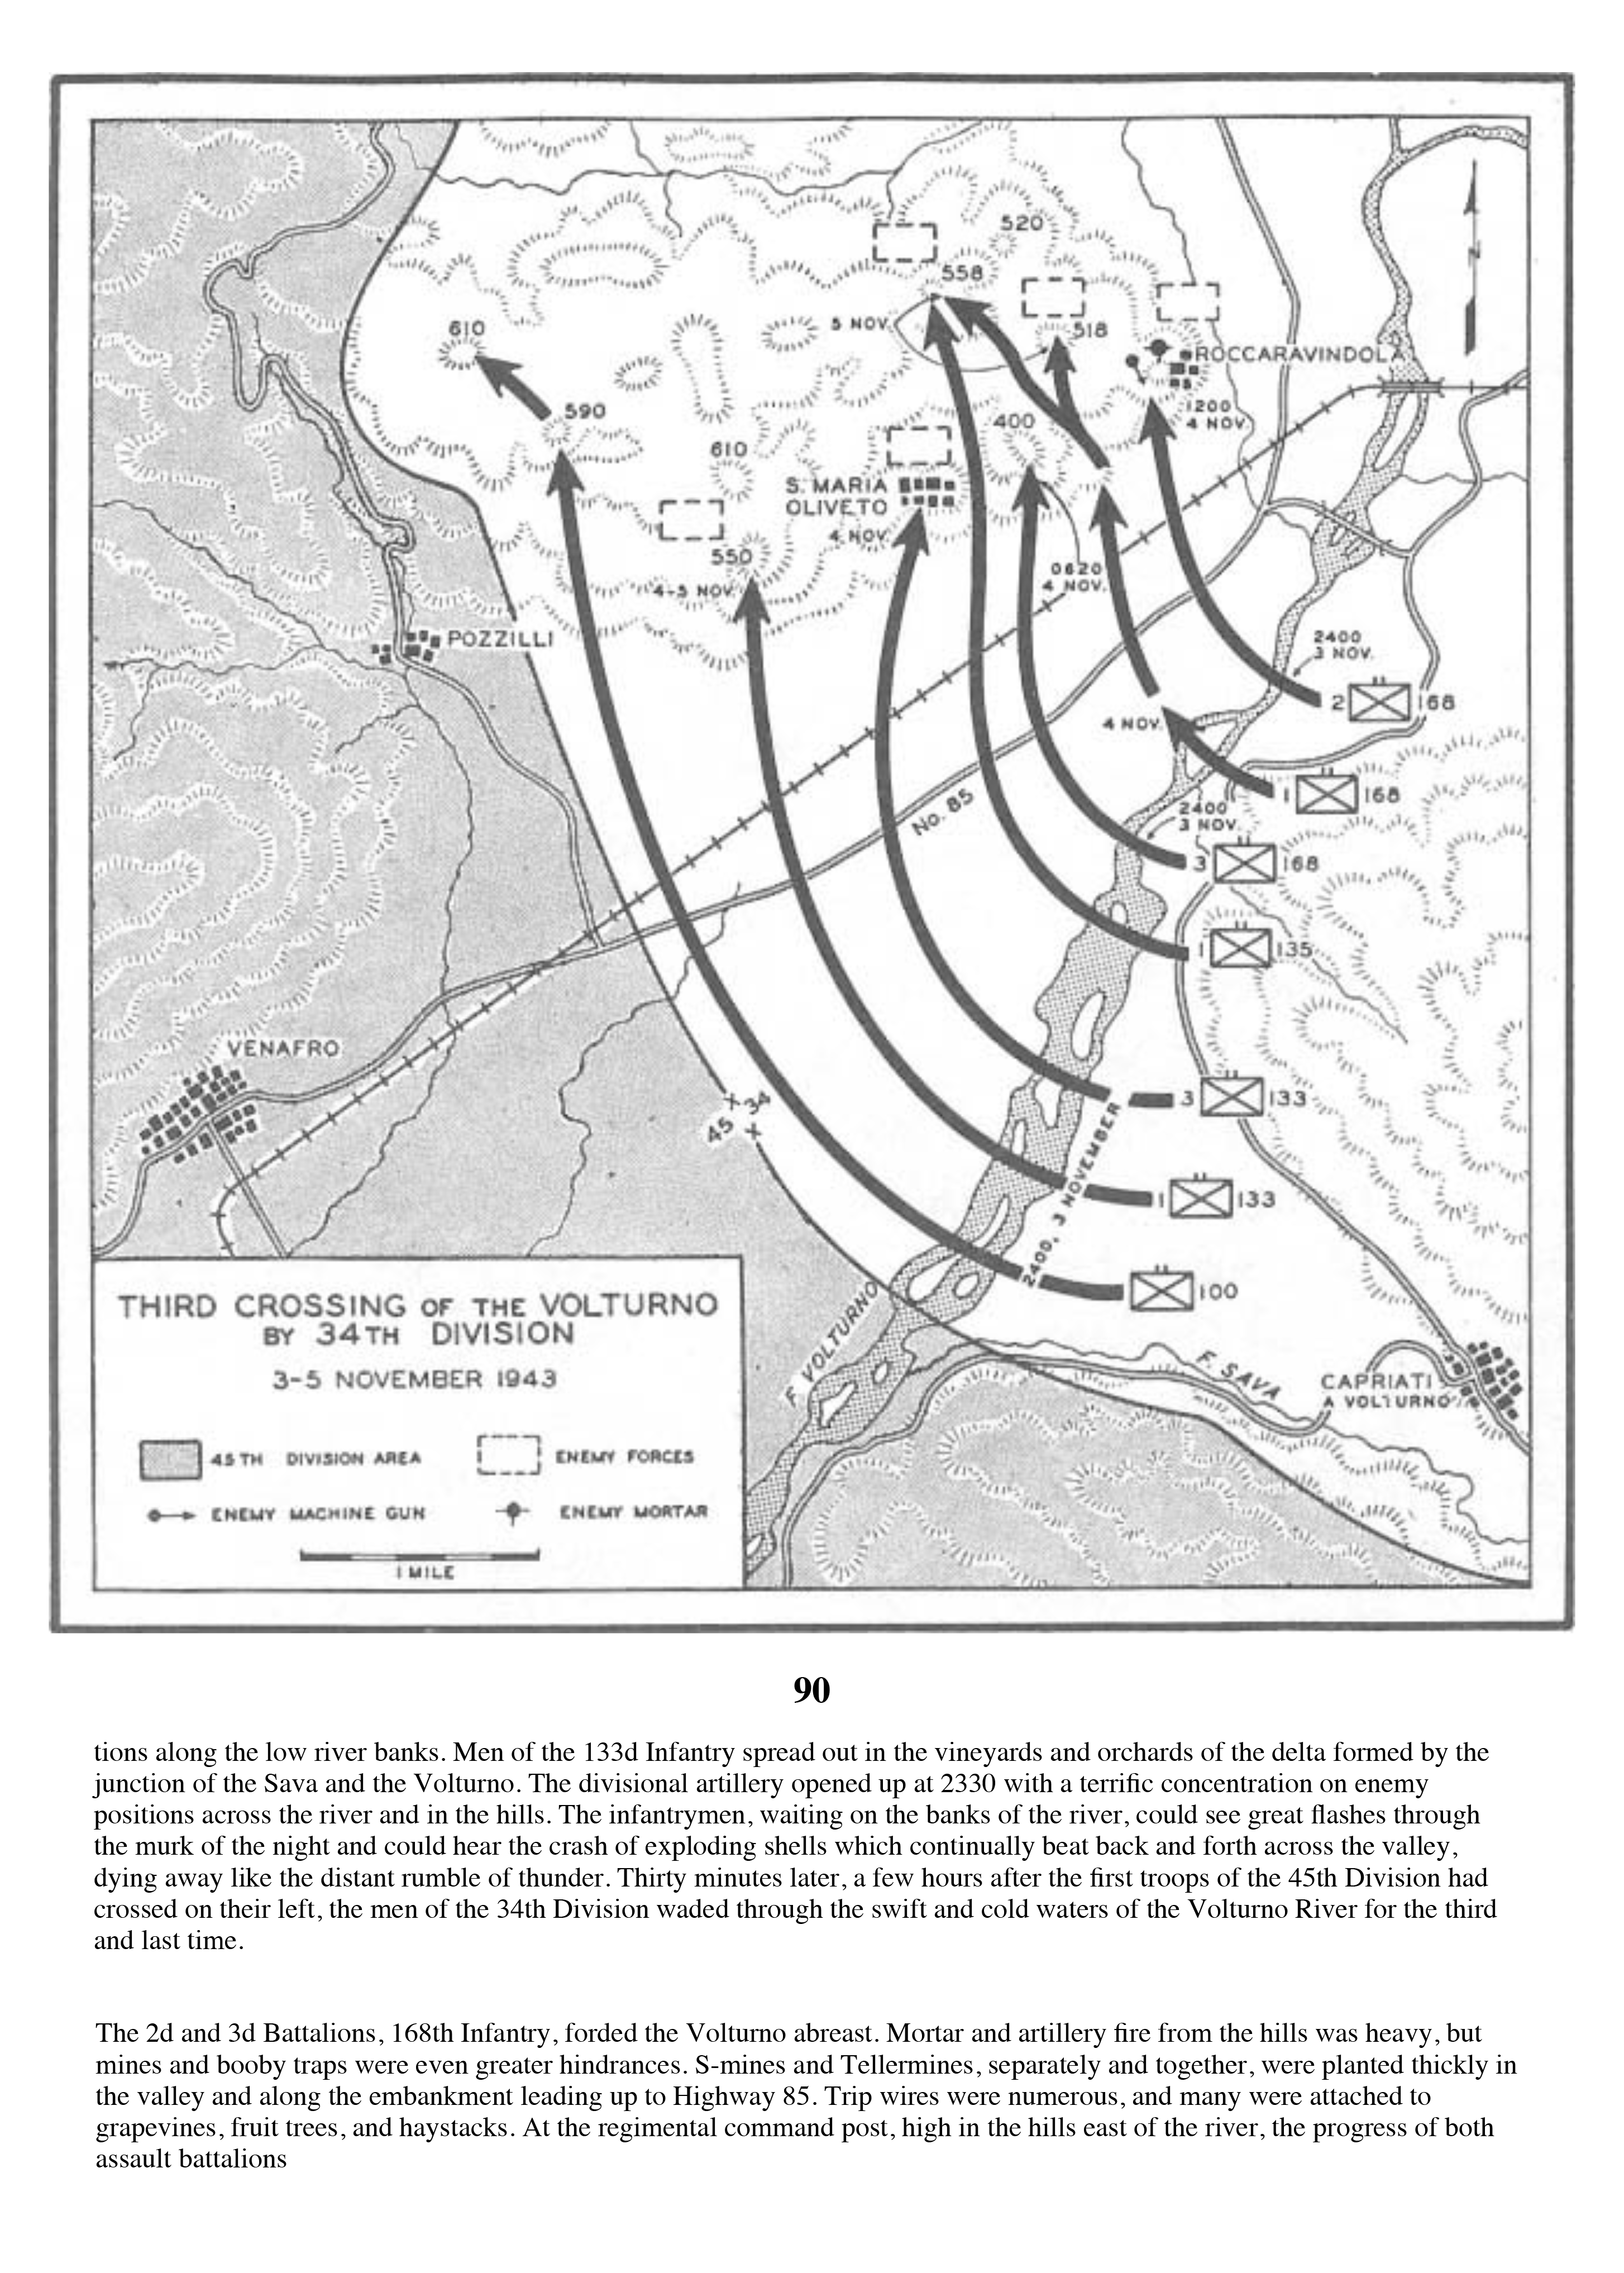 Extract from page 90 : From Volturno to the Winter Line Center of Military History, United States Army, Washington, D.C., 1990. First printed by the Historical Division, War Department, for the American Forces In Action series, 1945. CMH pub 100-8. © This work is in the public domain under the terms of Title 17, Chapter 1, Section 105 of the US Code.